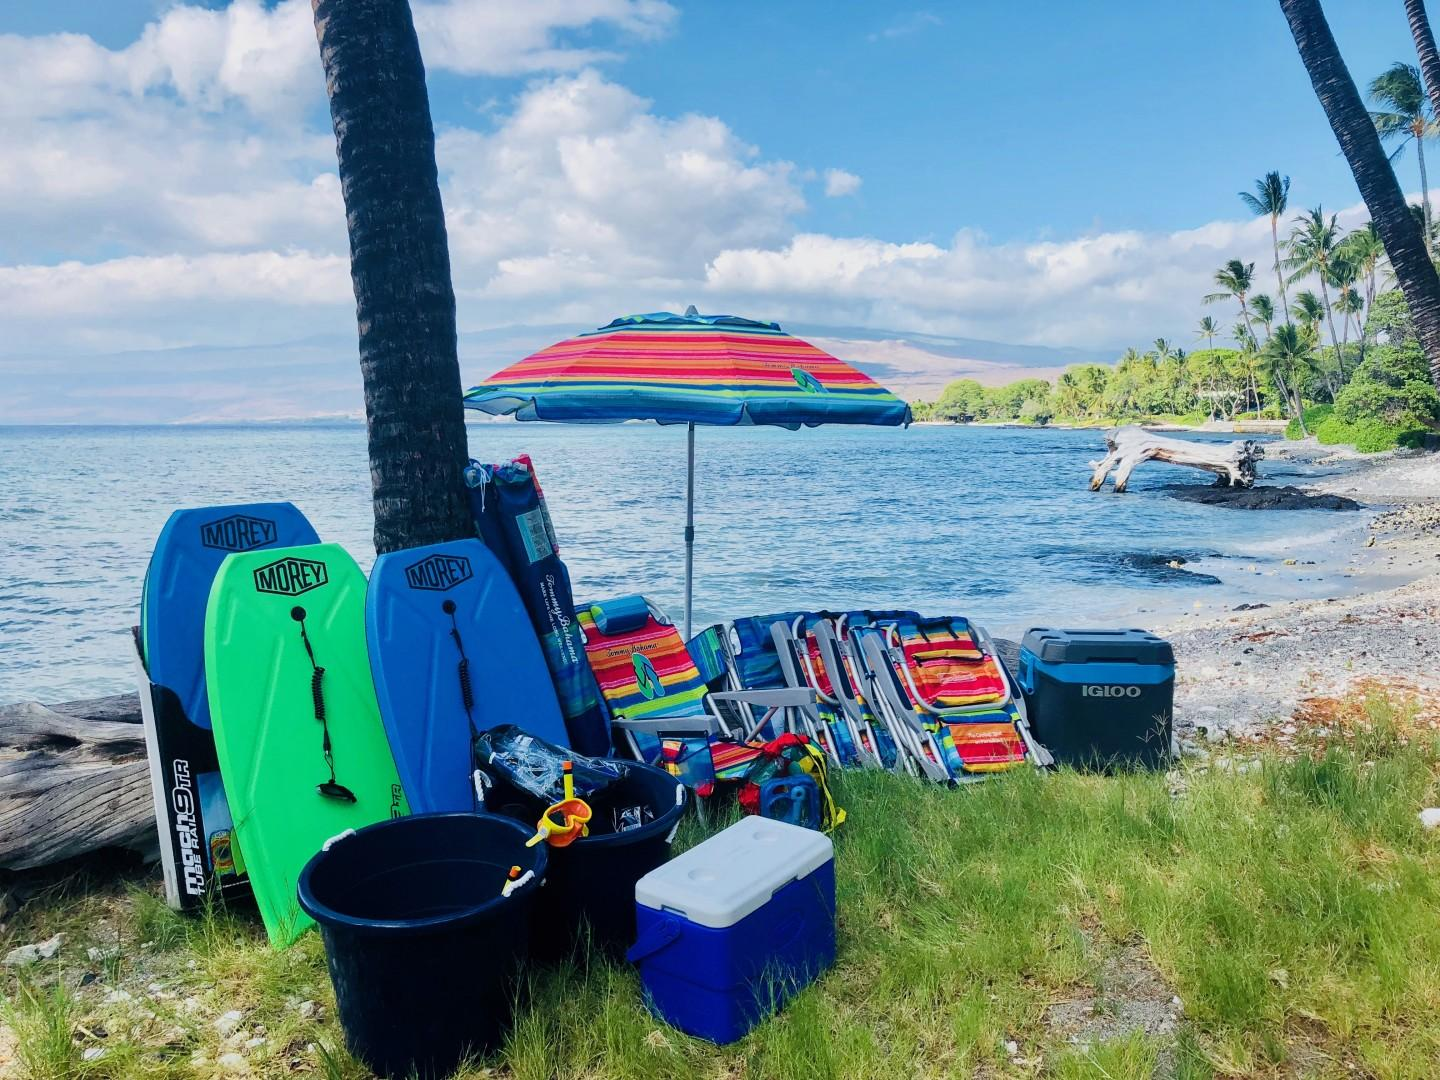 This property comes with a generous supply of beach amenities including snorkel gear, backpack beach chairs, umbrellas, boogie boards, coolers, snorkel gear for kids and adults!